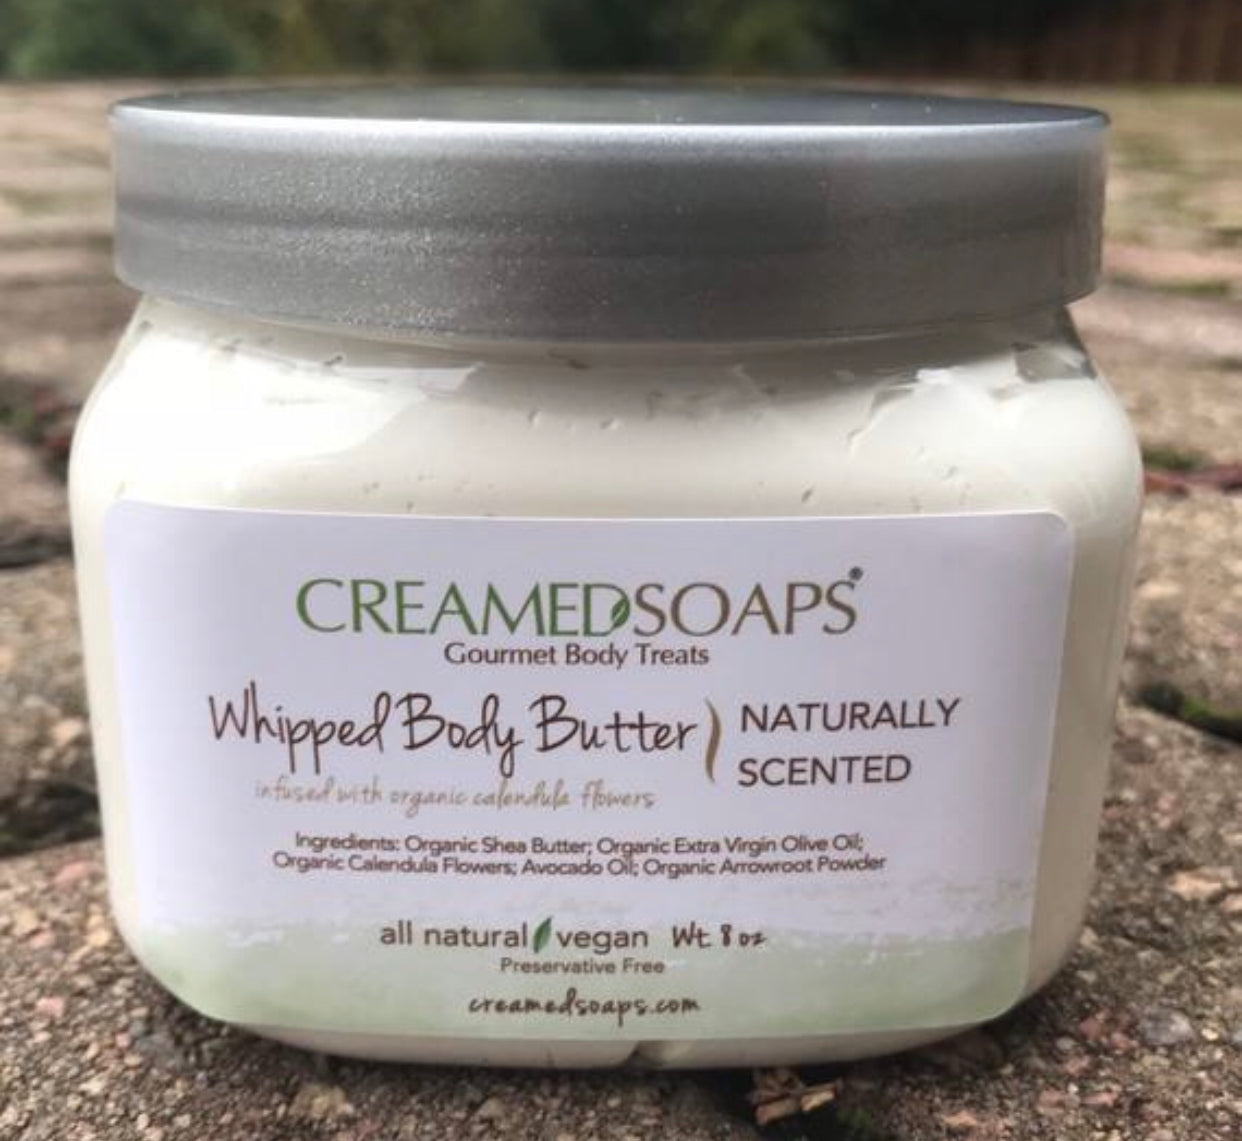 Unscented Whipped Body Butter - Whipped Shea Butter